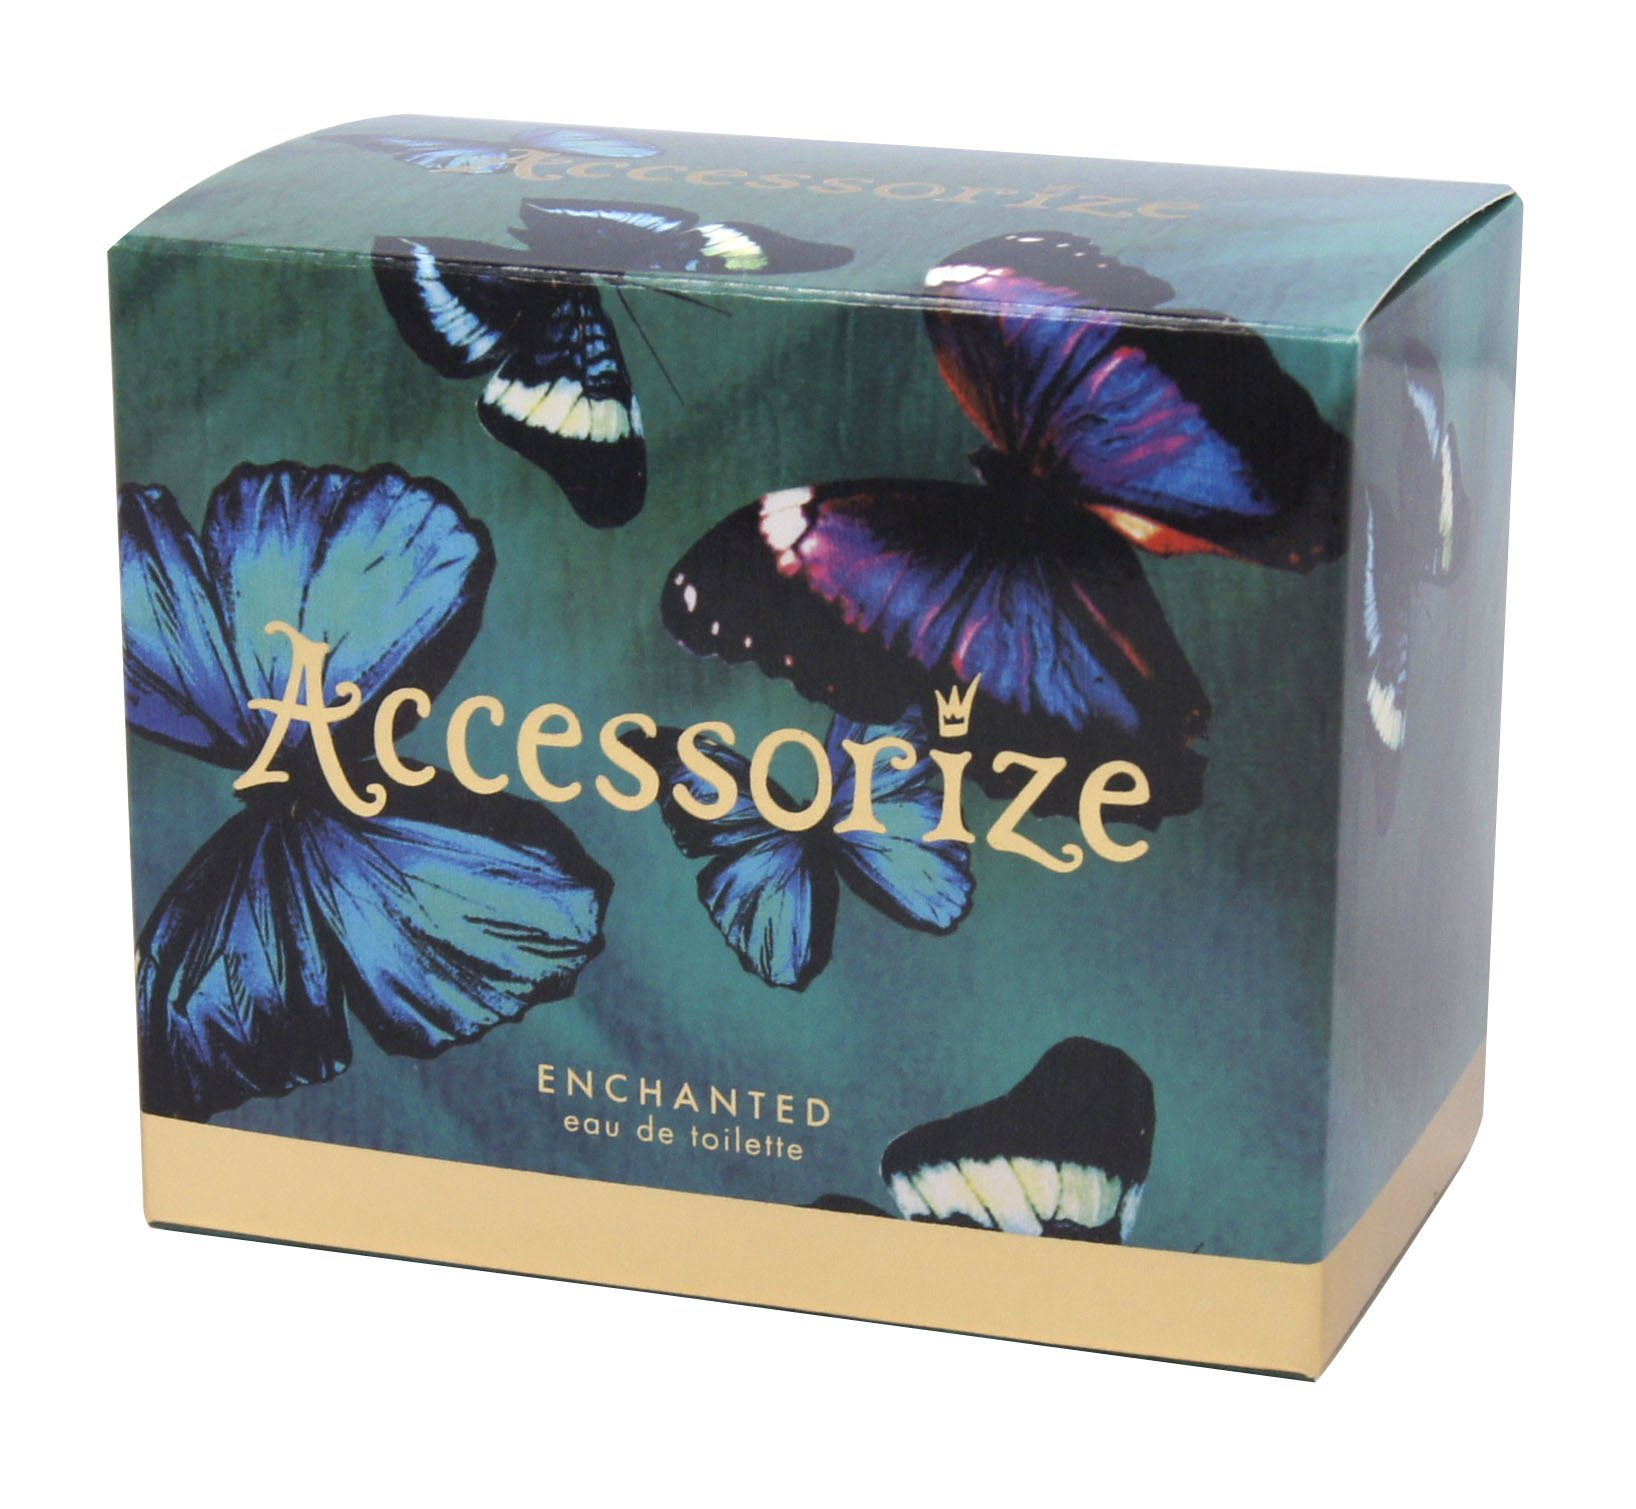 Accessorize Fragrance Enchanted 50ml by Accessorize (Image #2)